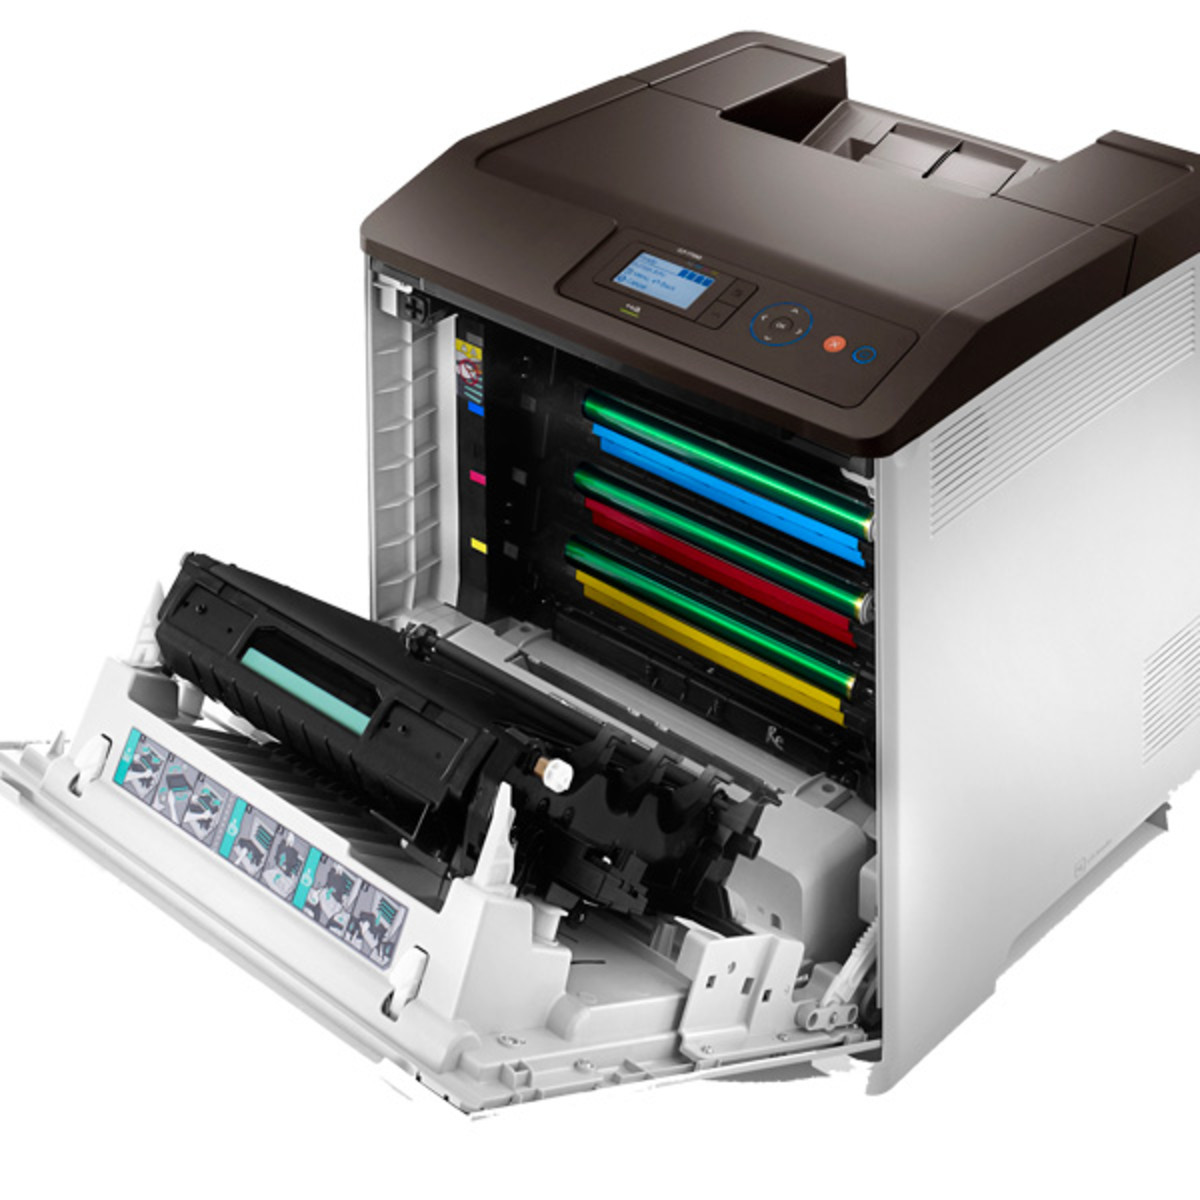 Samsung CLP-775ND Laser Printer